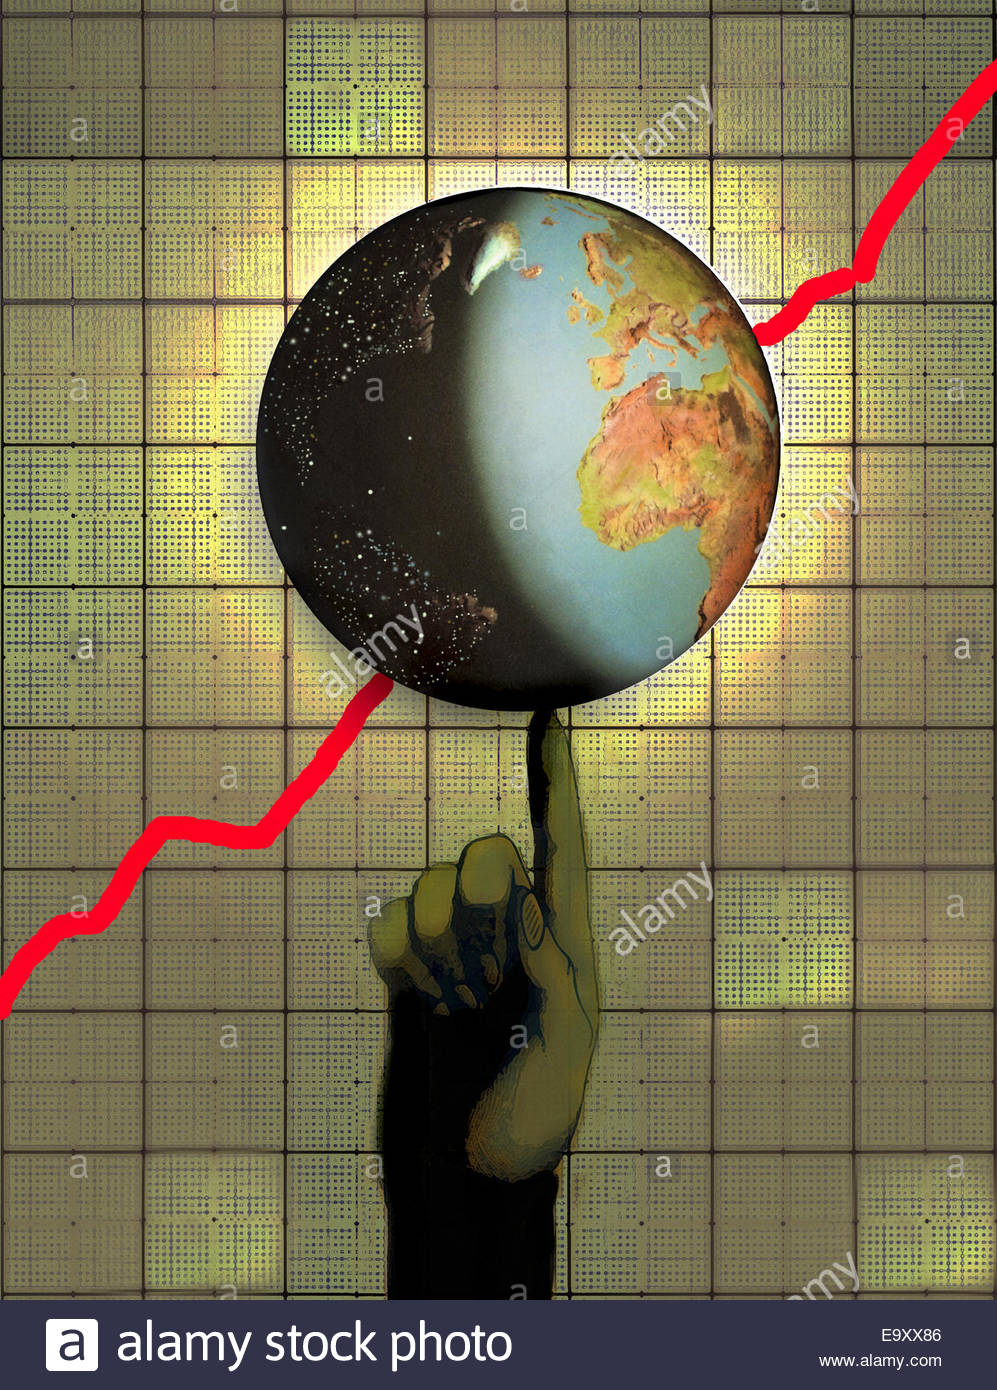 Globe with ascending line graph balancing on finger - Stock Image